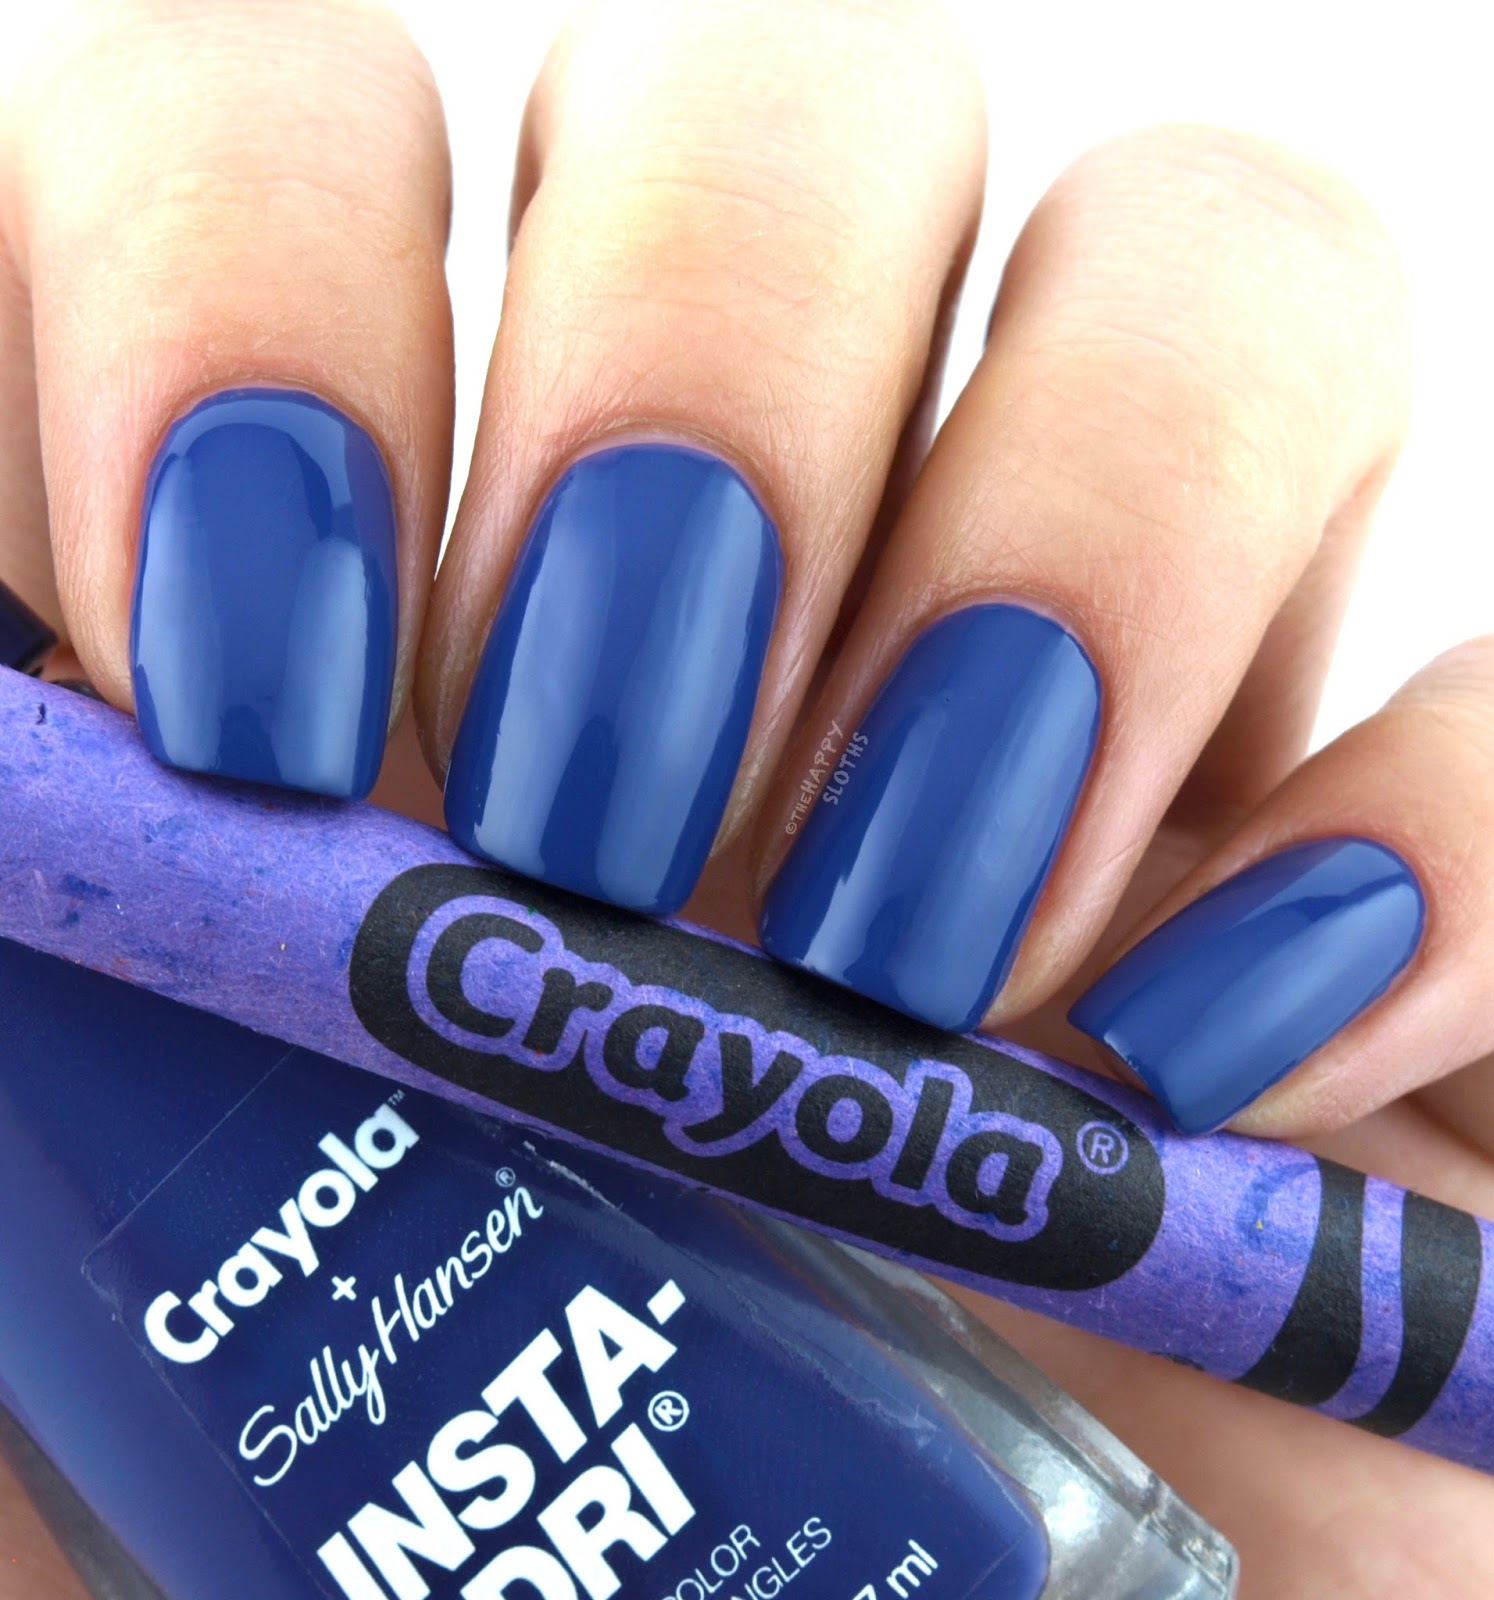 Sally Hansen + Crayola Collection | 513 Purple Heart: Review and Swatches